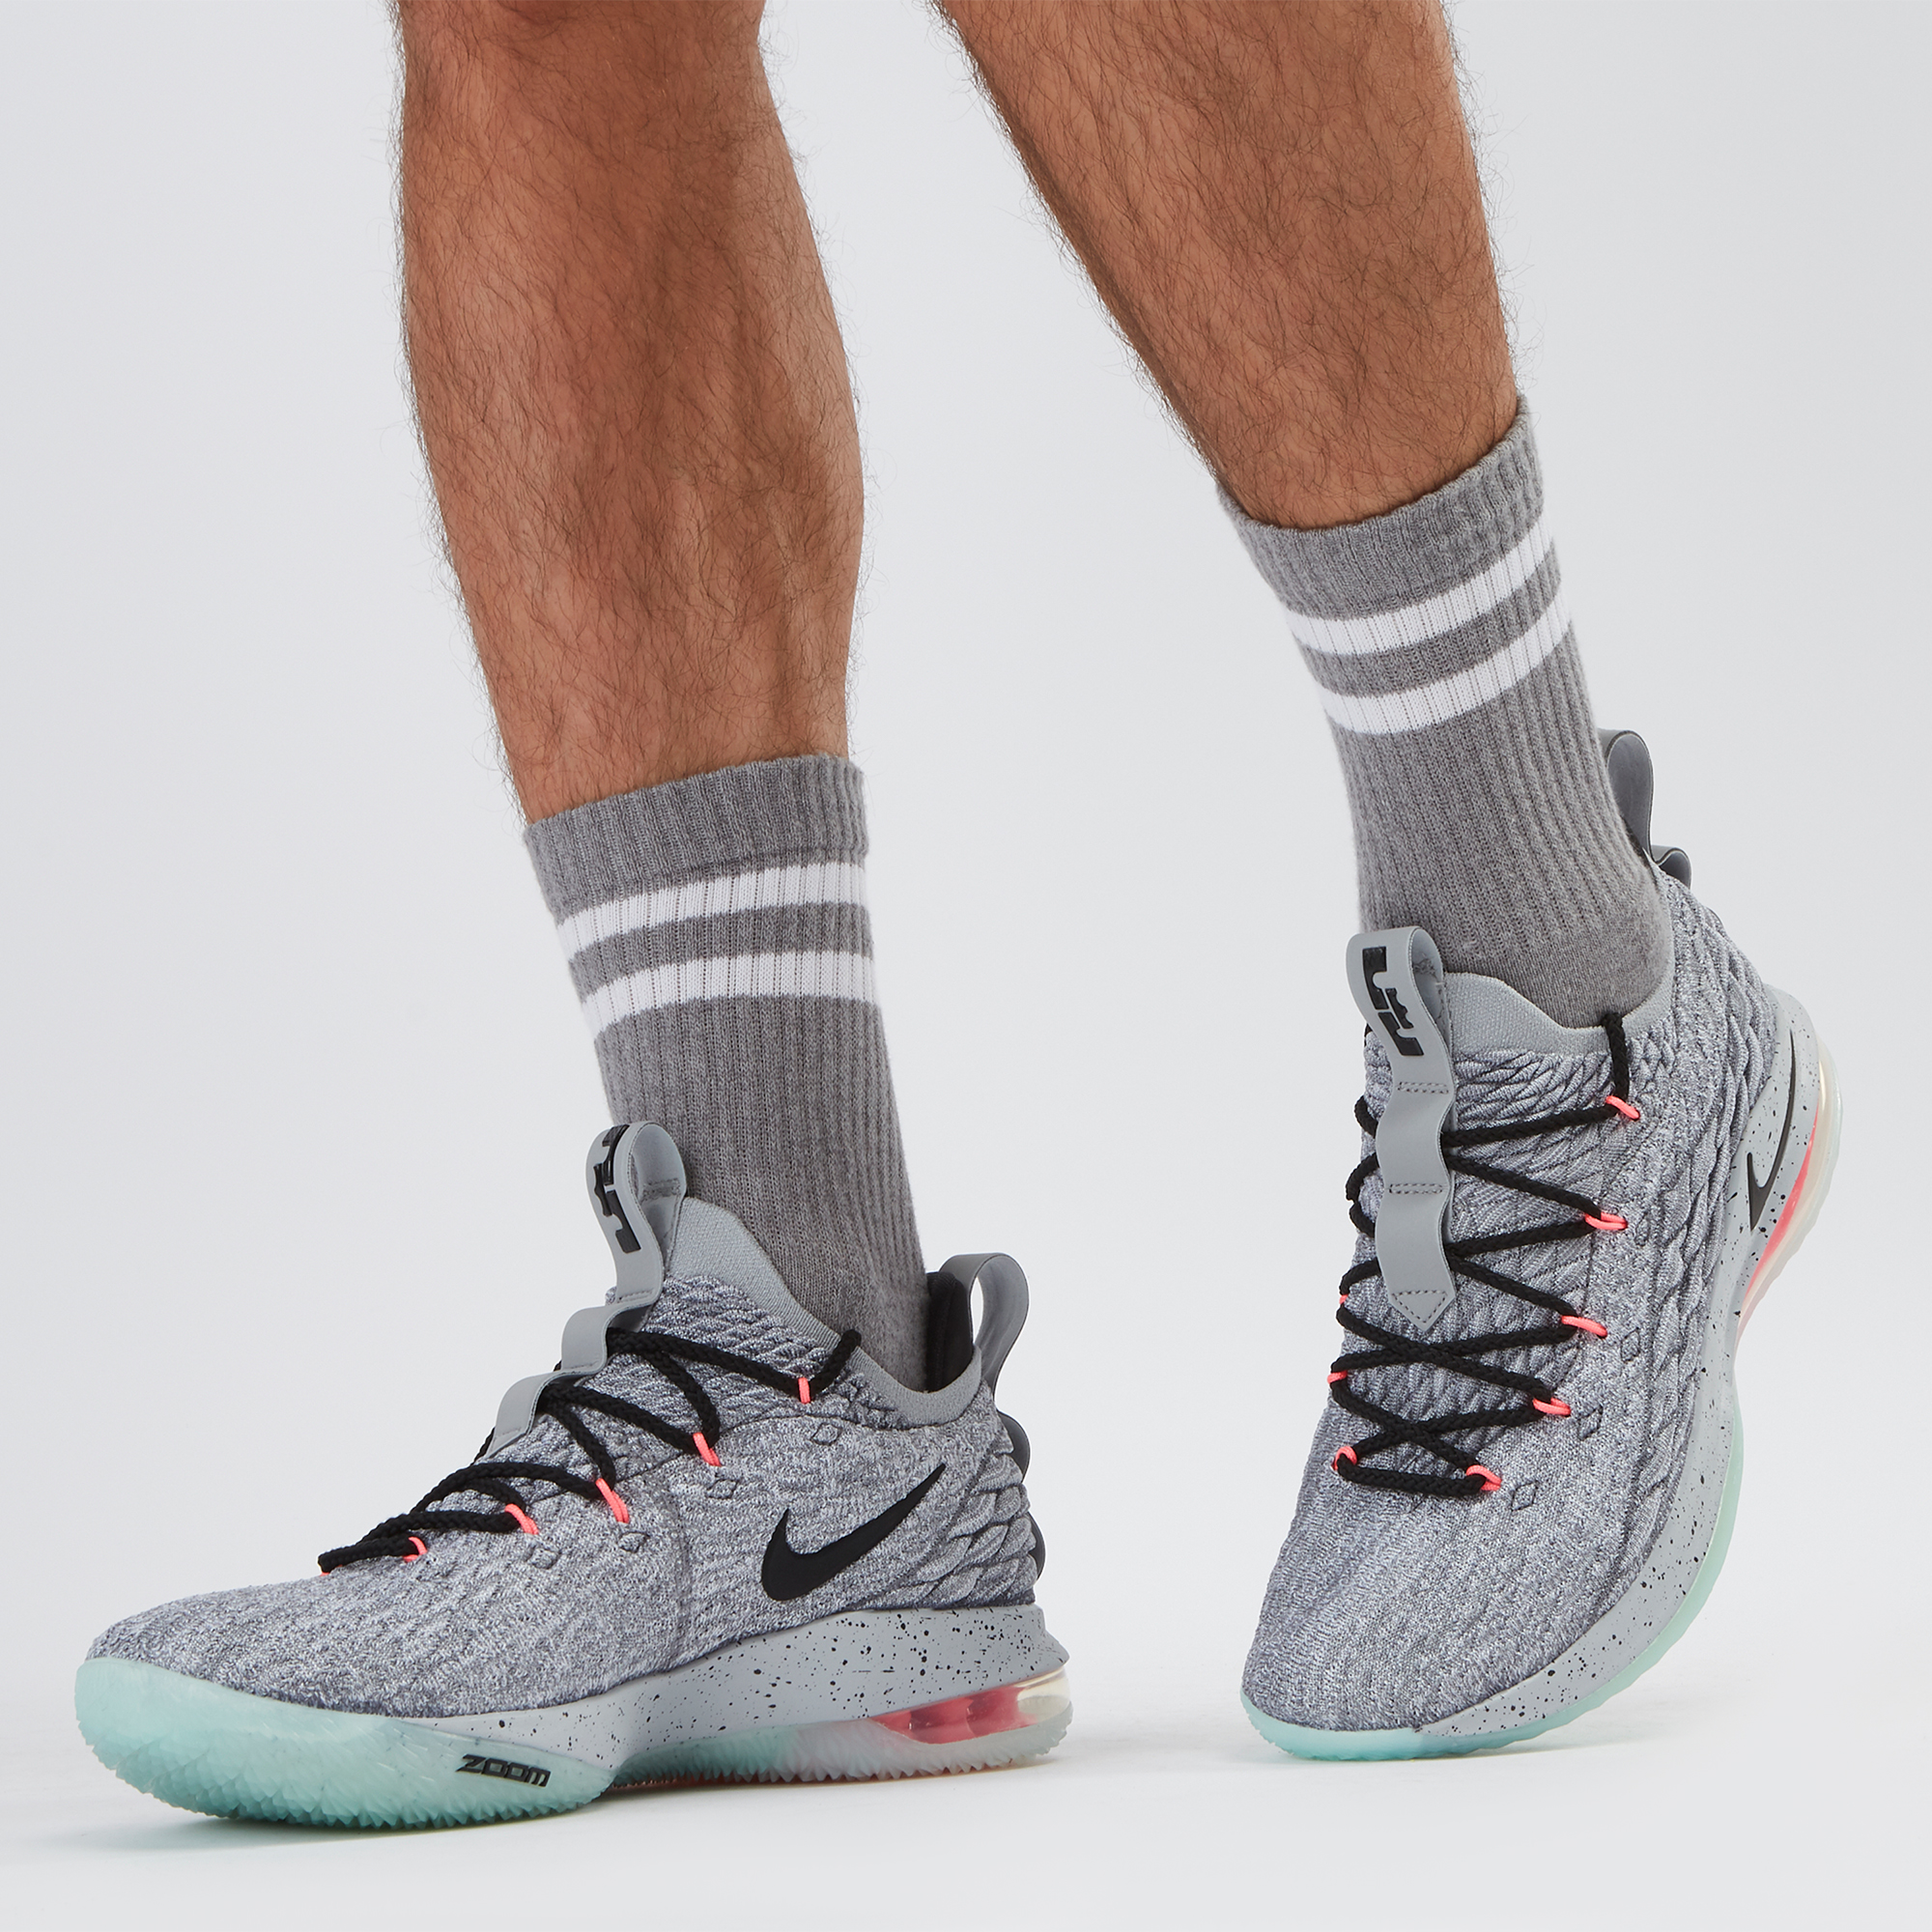 sale retailer b6cf9 e0d3e Shop Grey Nike LeBron 15 Low Shoe | Sneakers | Shoes ...